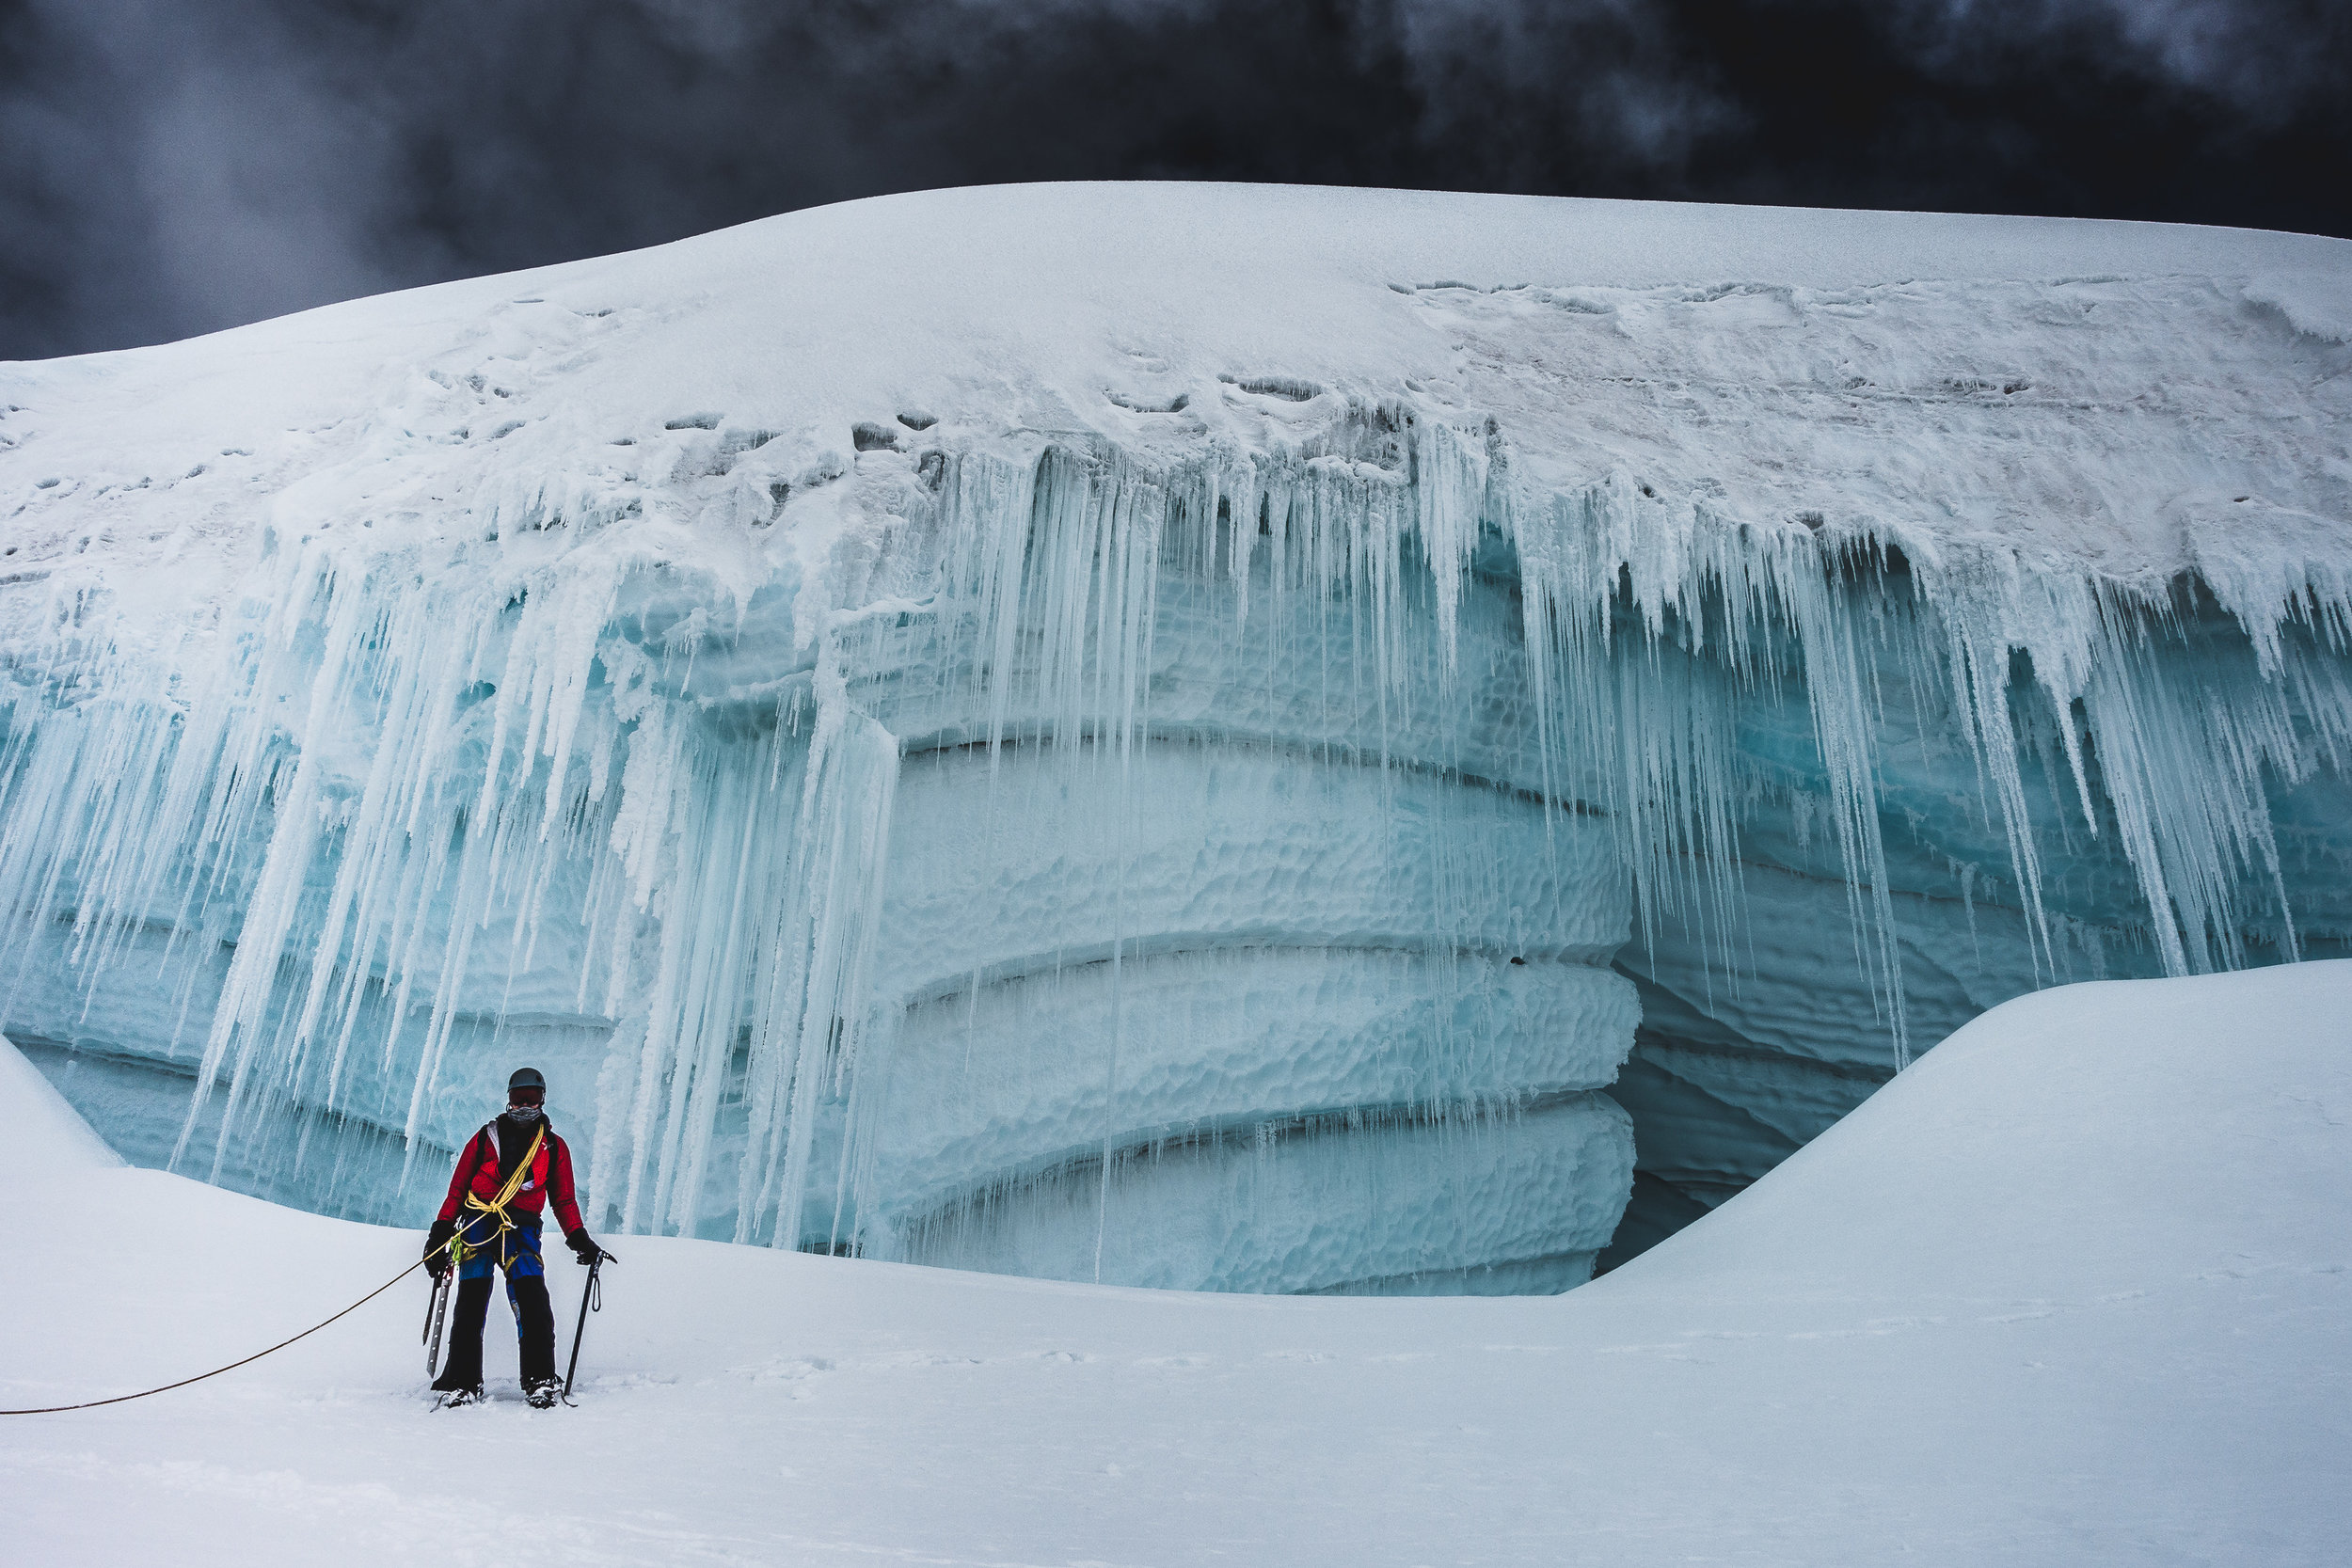 Ice walls high on Tocllaraju (6032m), Cordillera Blanca, Peru